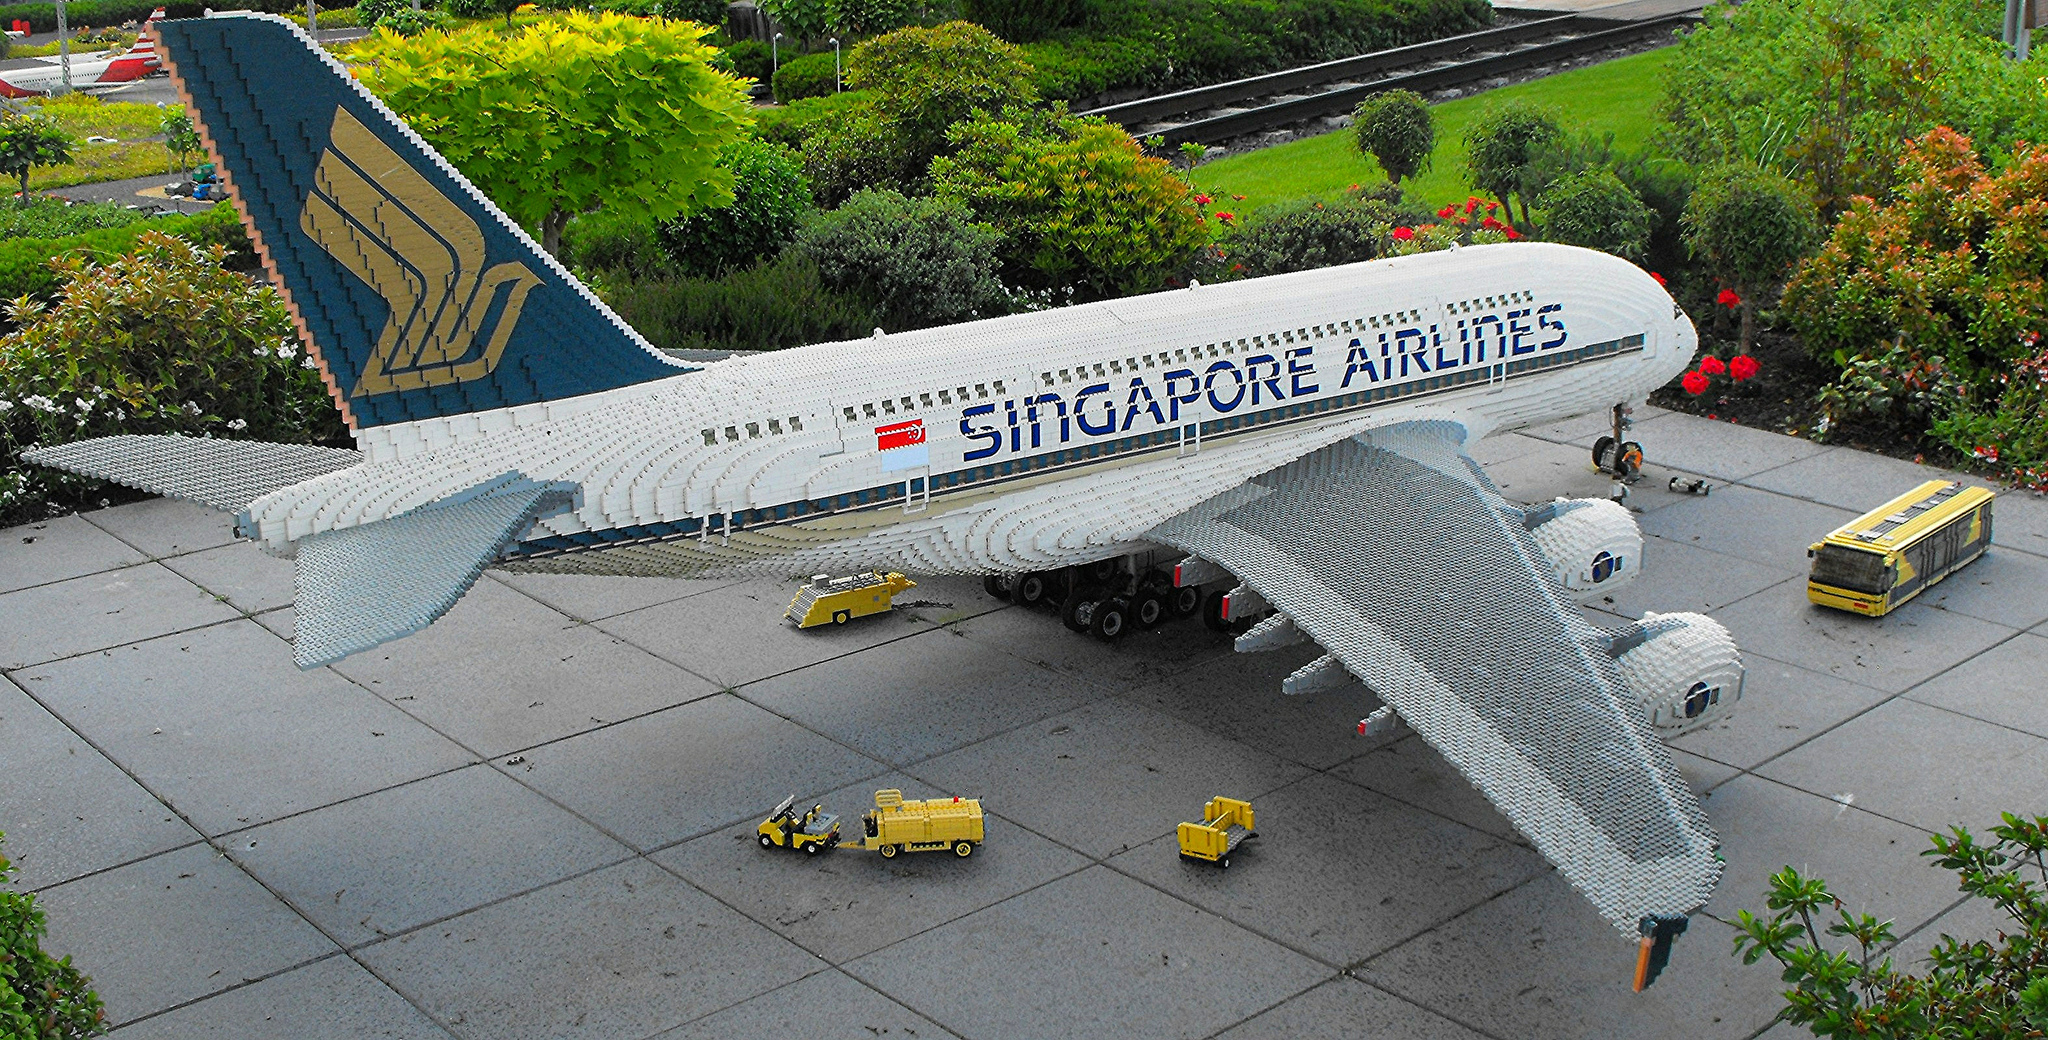 Singapore Airlines Lego Airbus A380